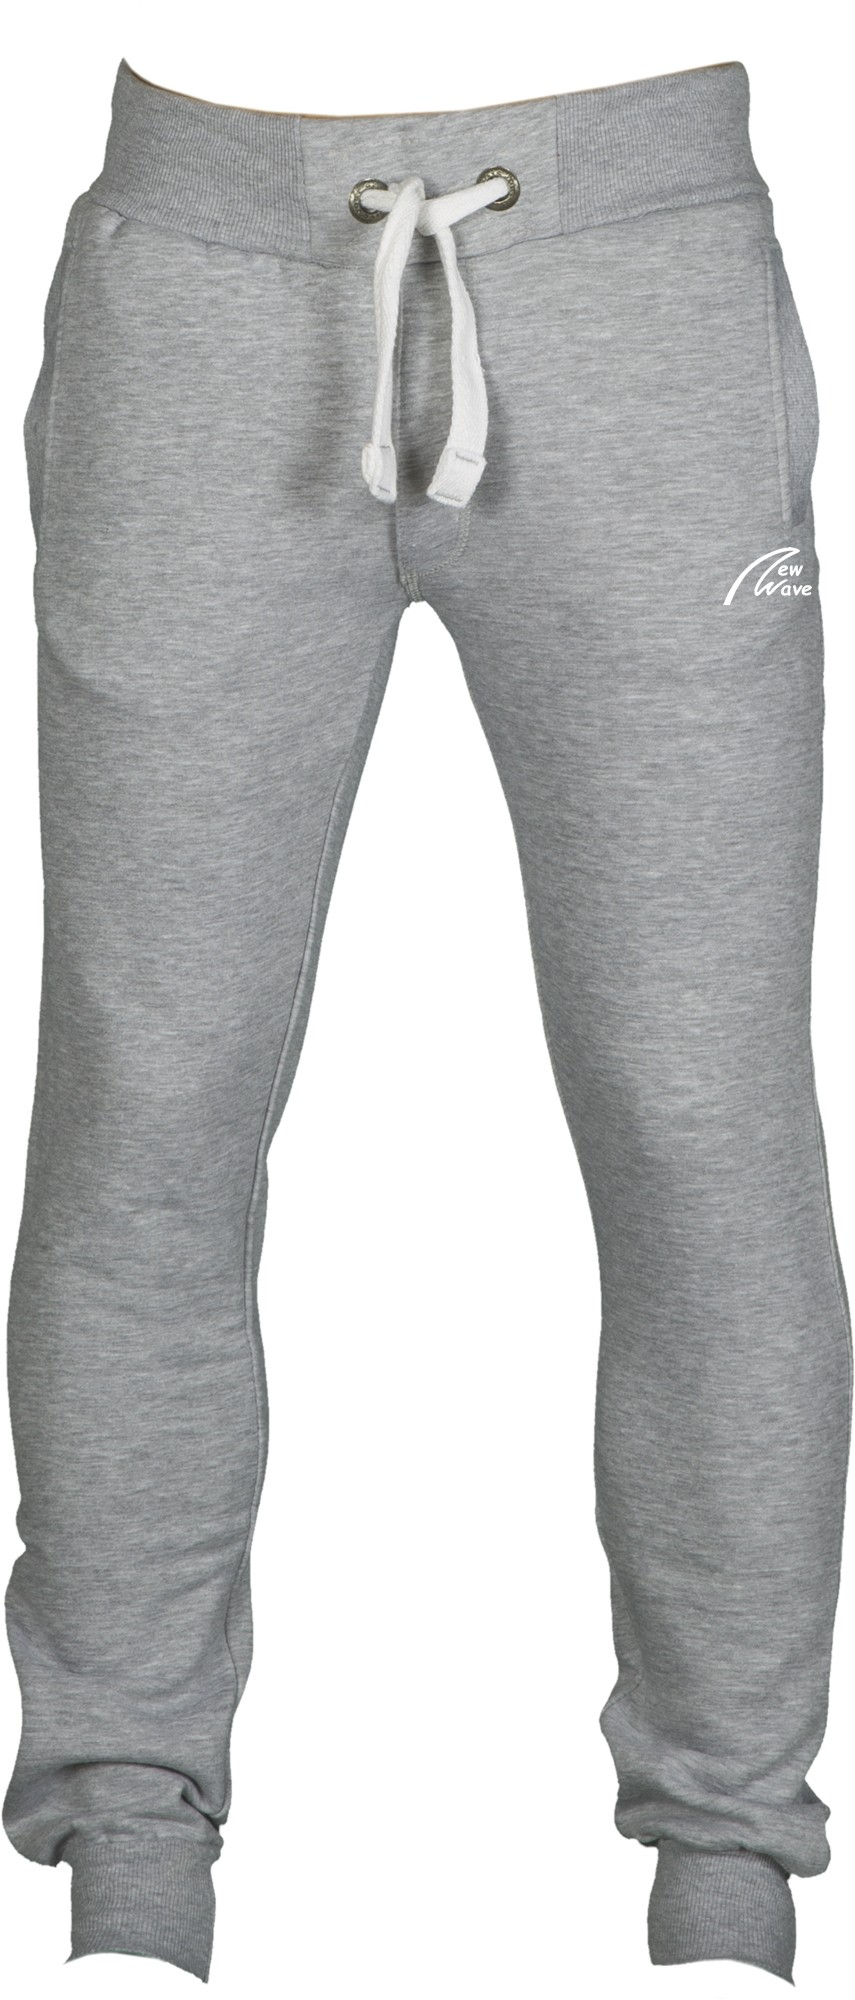 Straight Training Pants-grau meliert